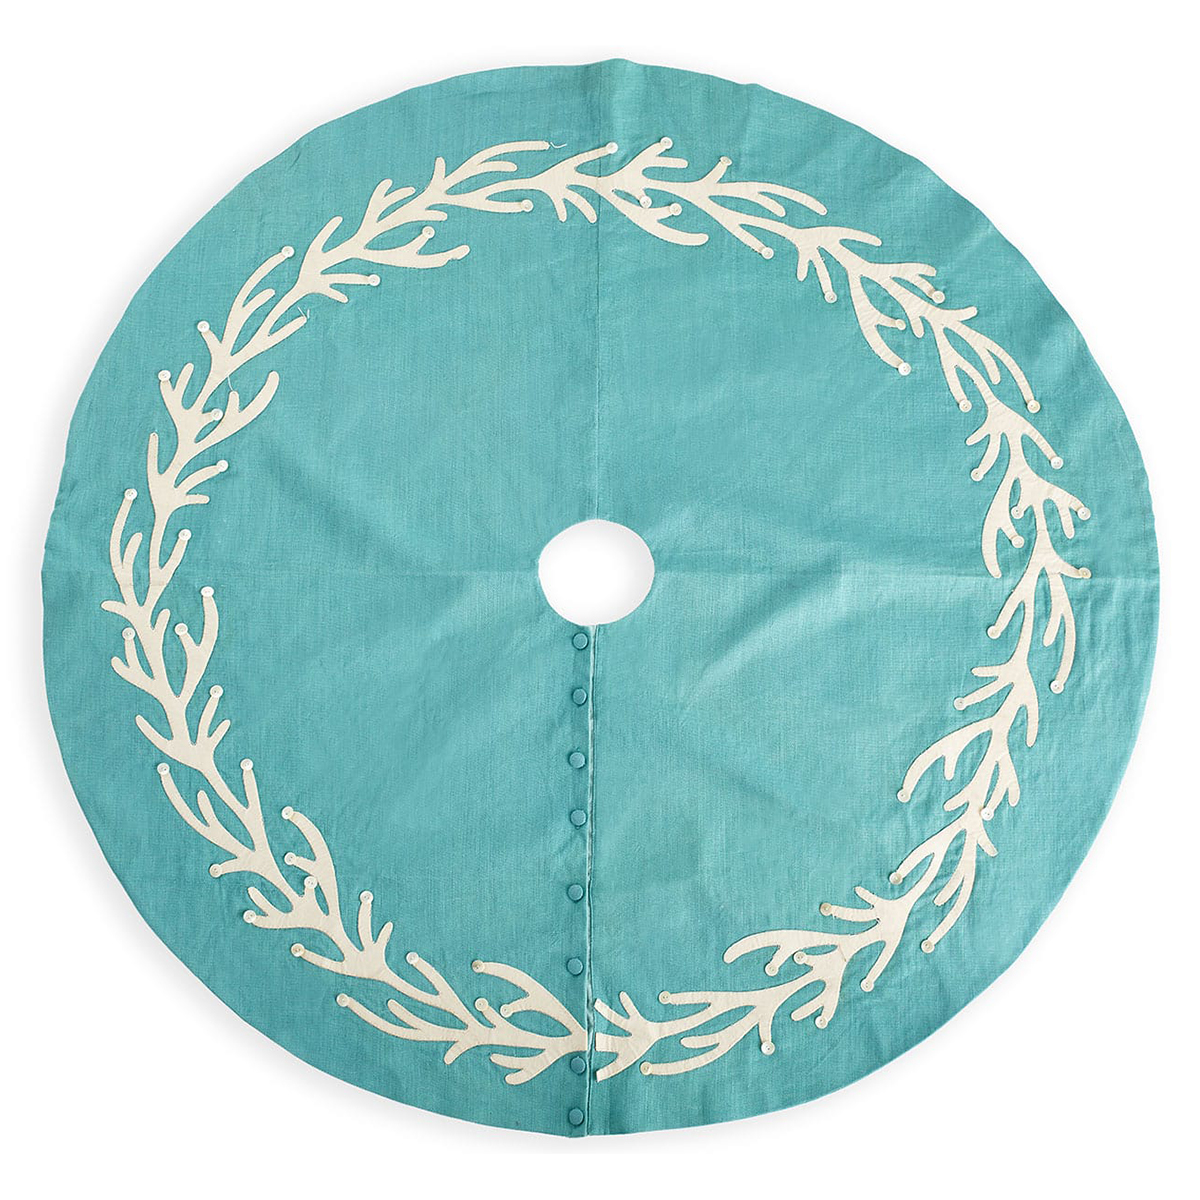 Aqua Christmas Tree Skirt: Turquoise Coral Tree Skirt